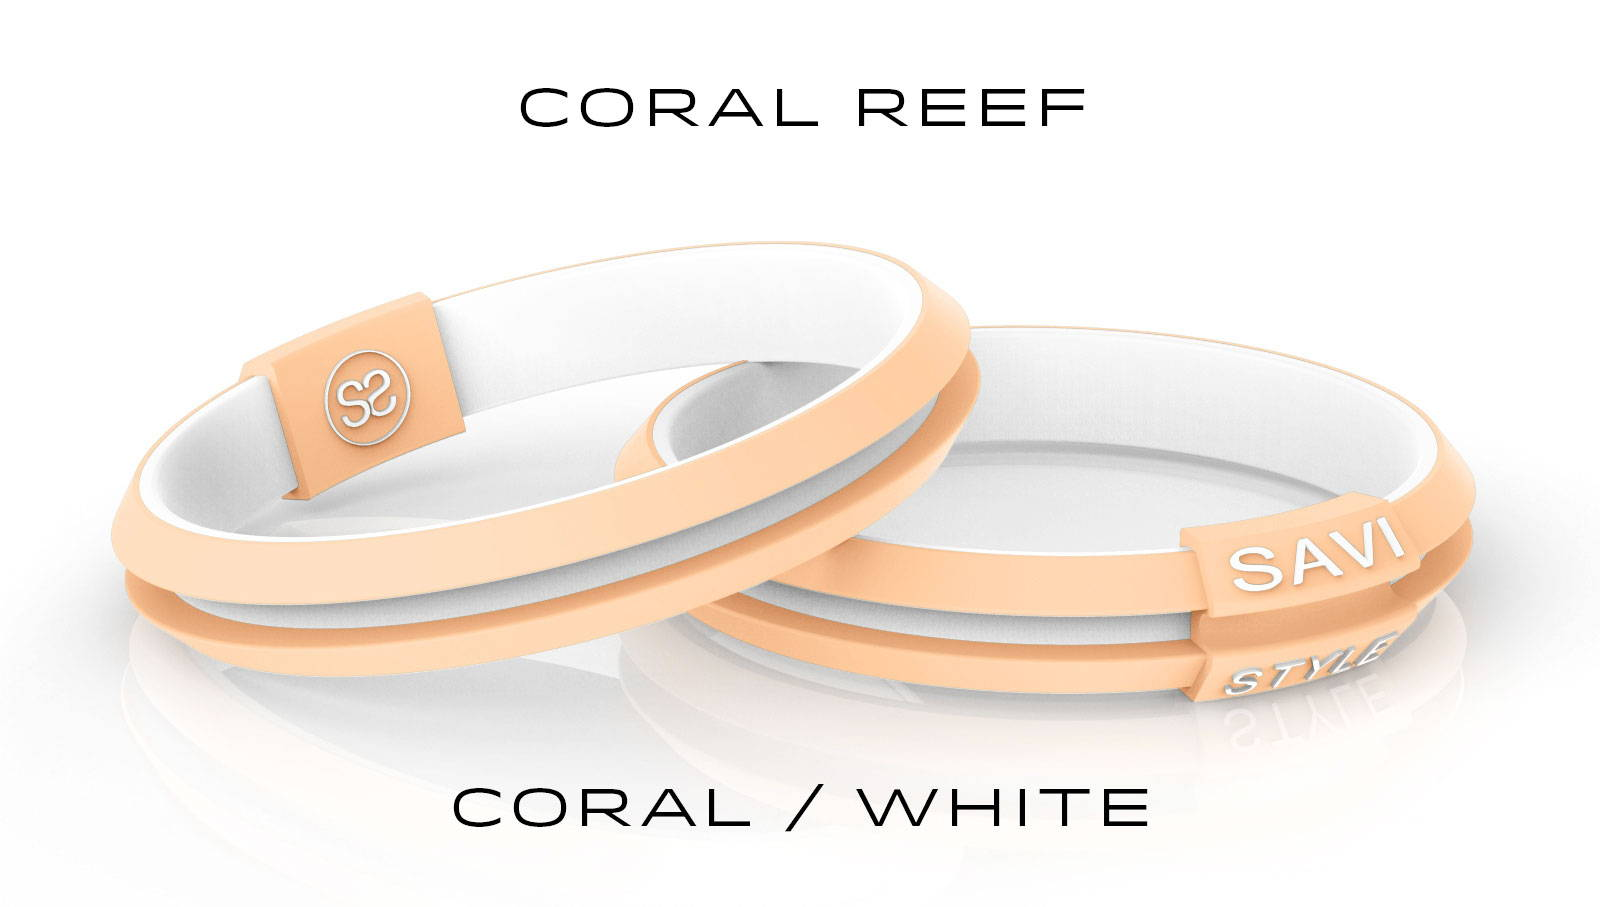 savi sleek coral reef by savistyle hair tie bracelet stacked view